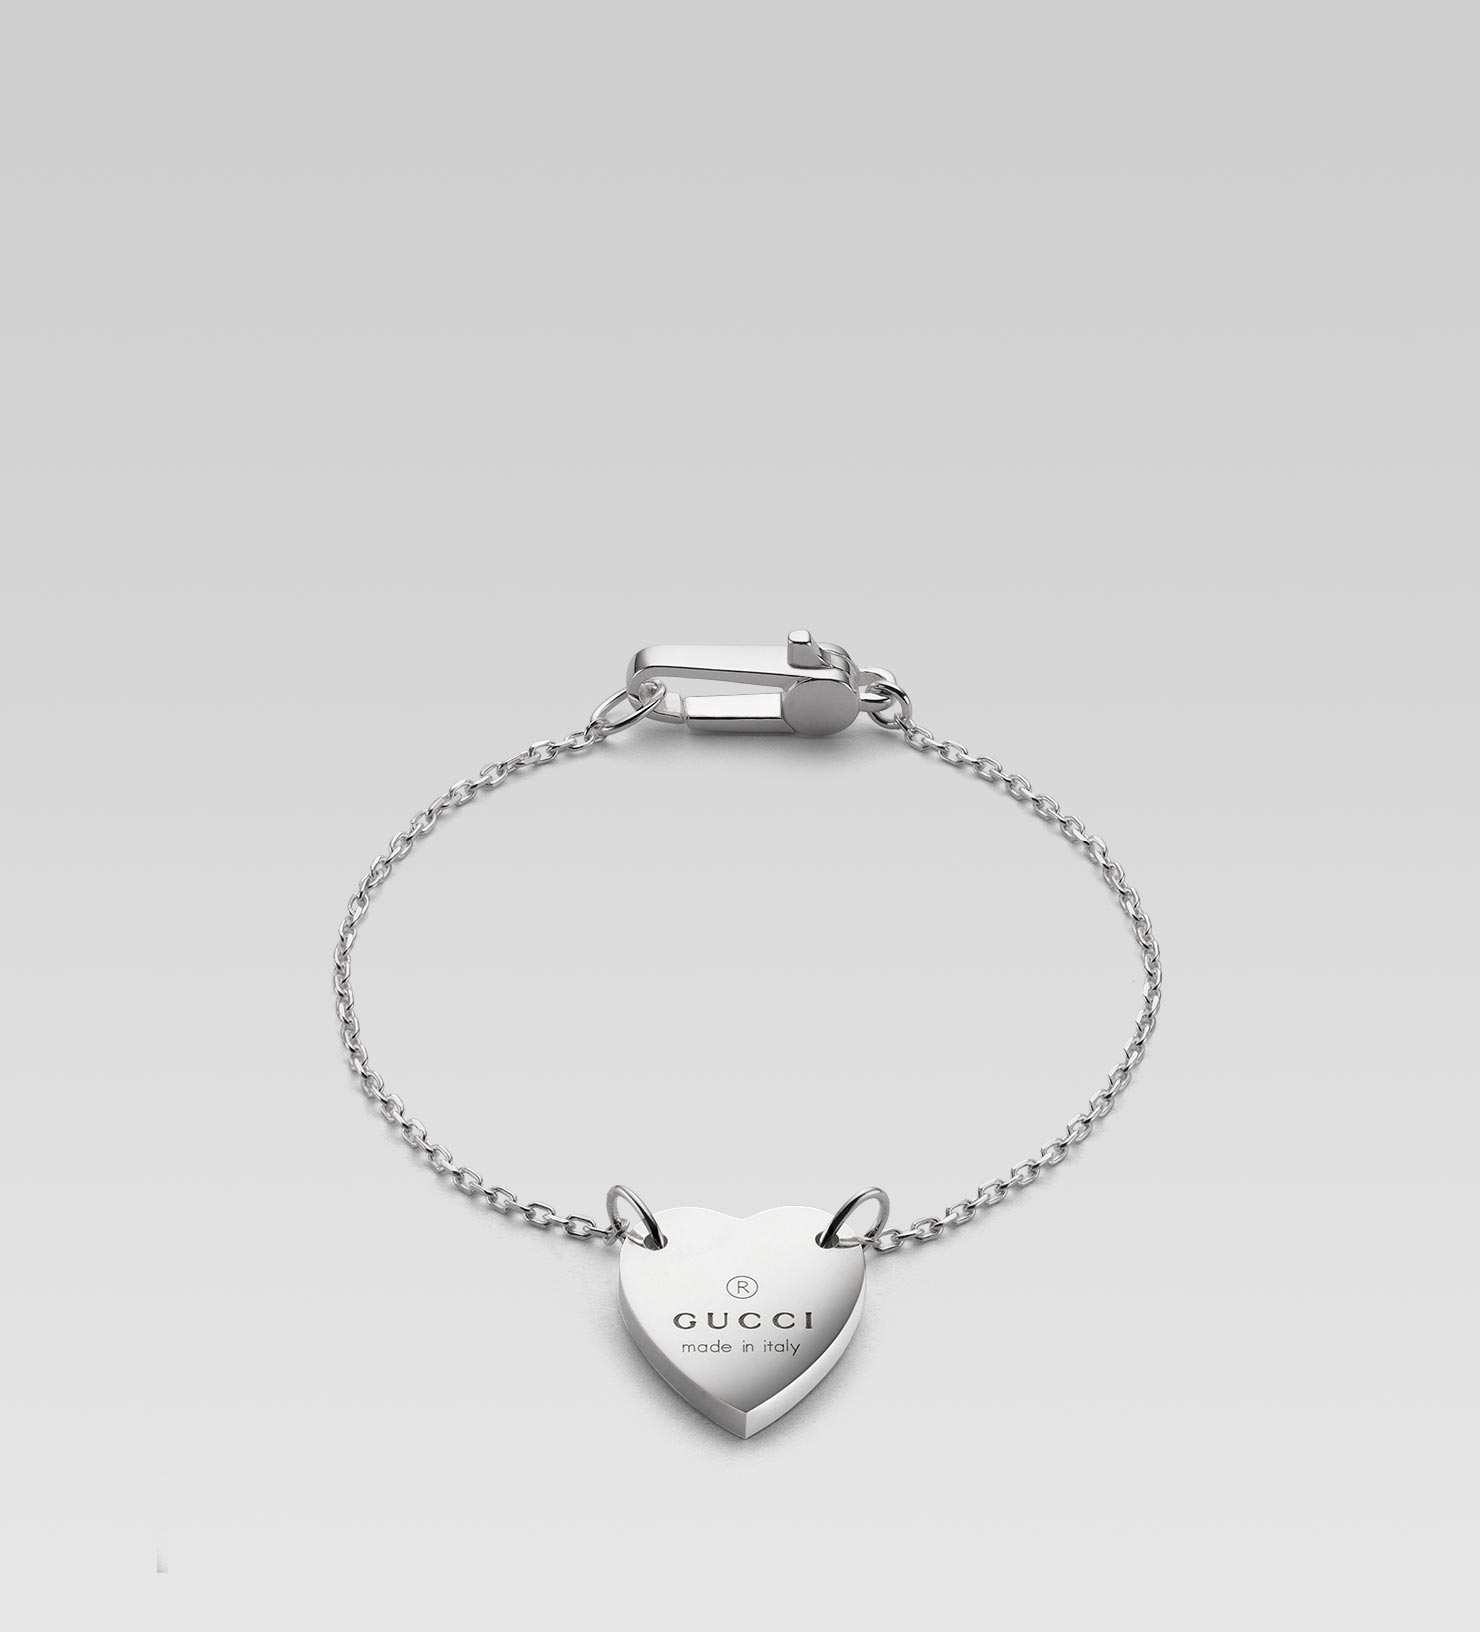 c50daeab1 Gucci Bracelet With Trademark Engraved Heart in Metallic - Lyst